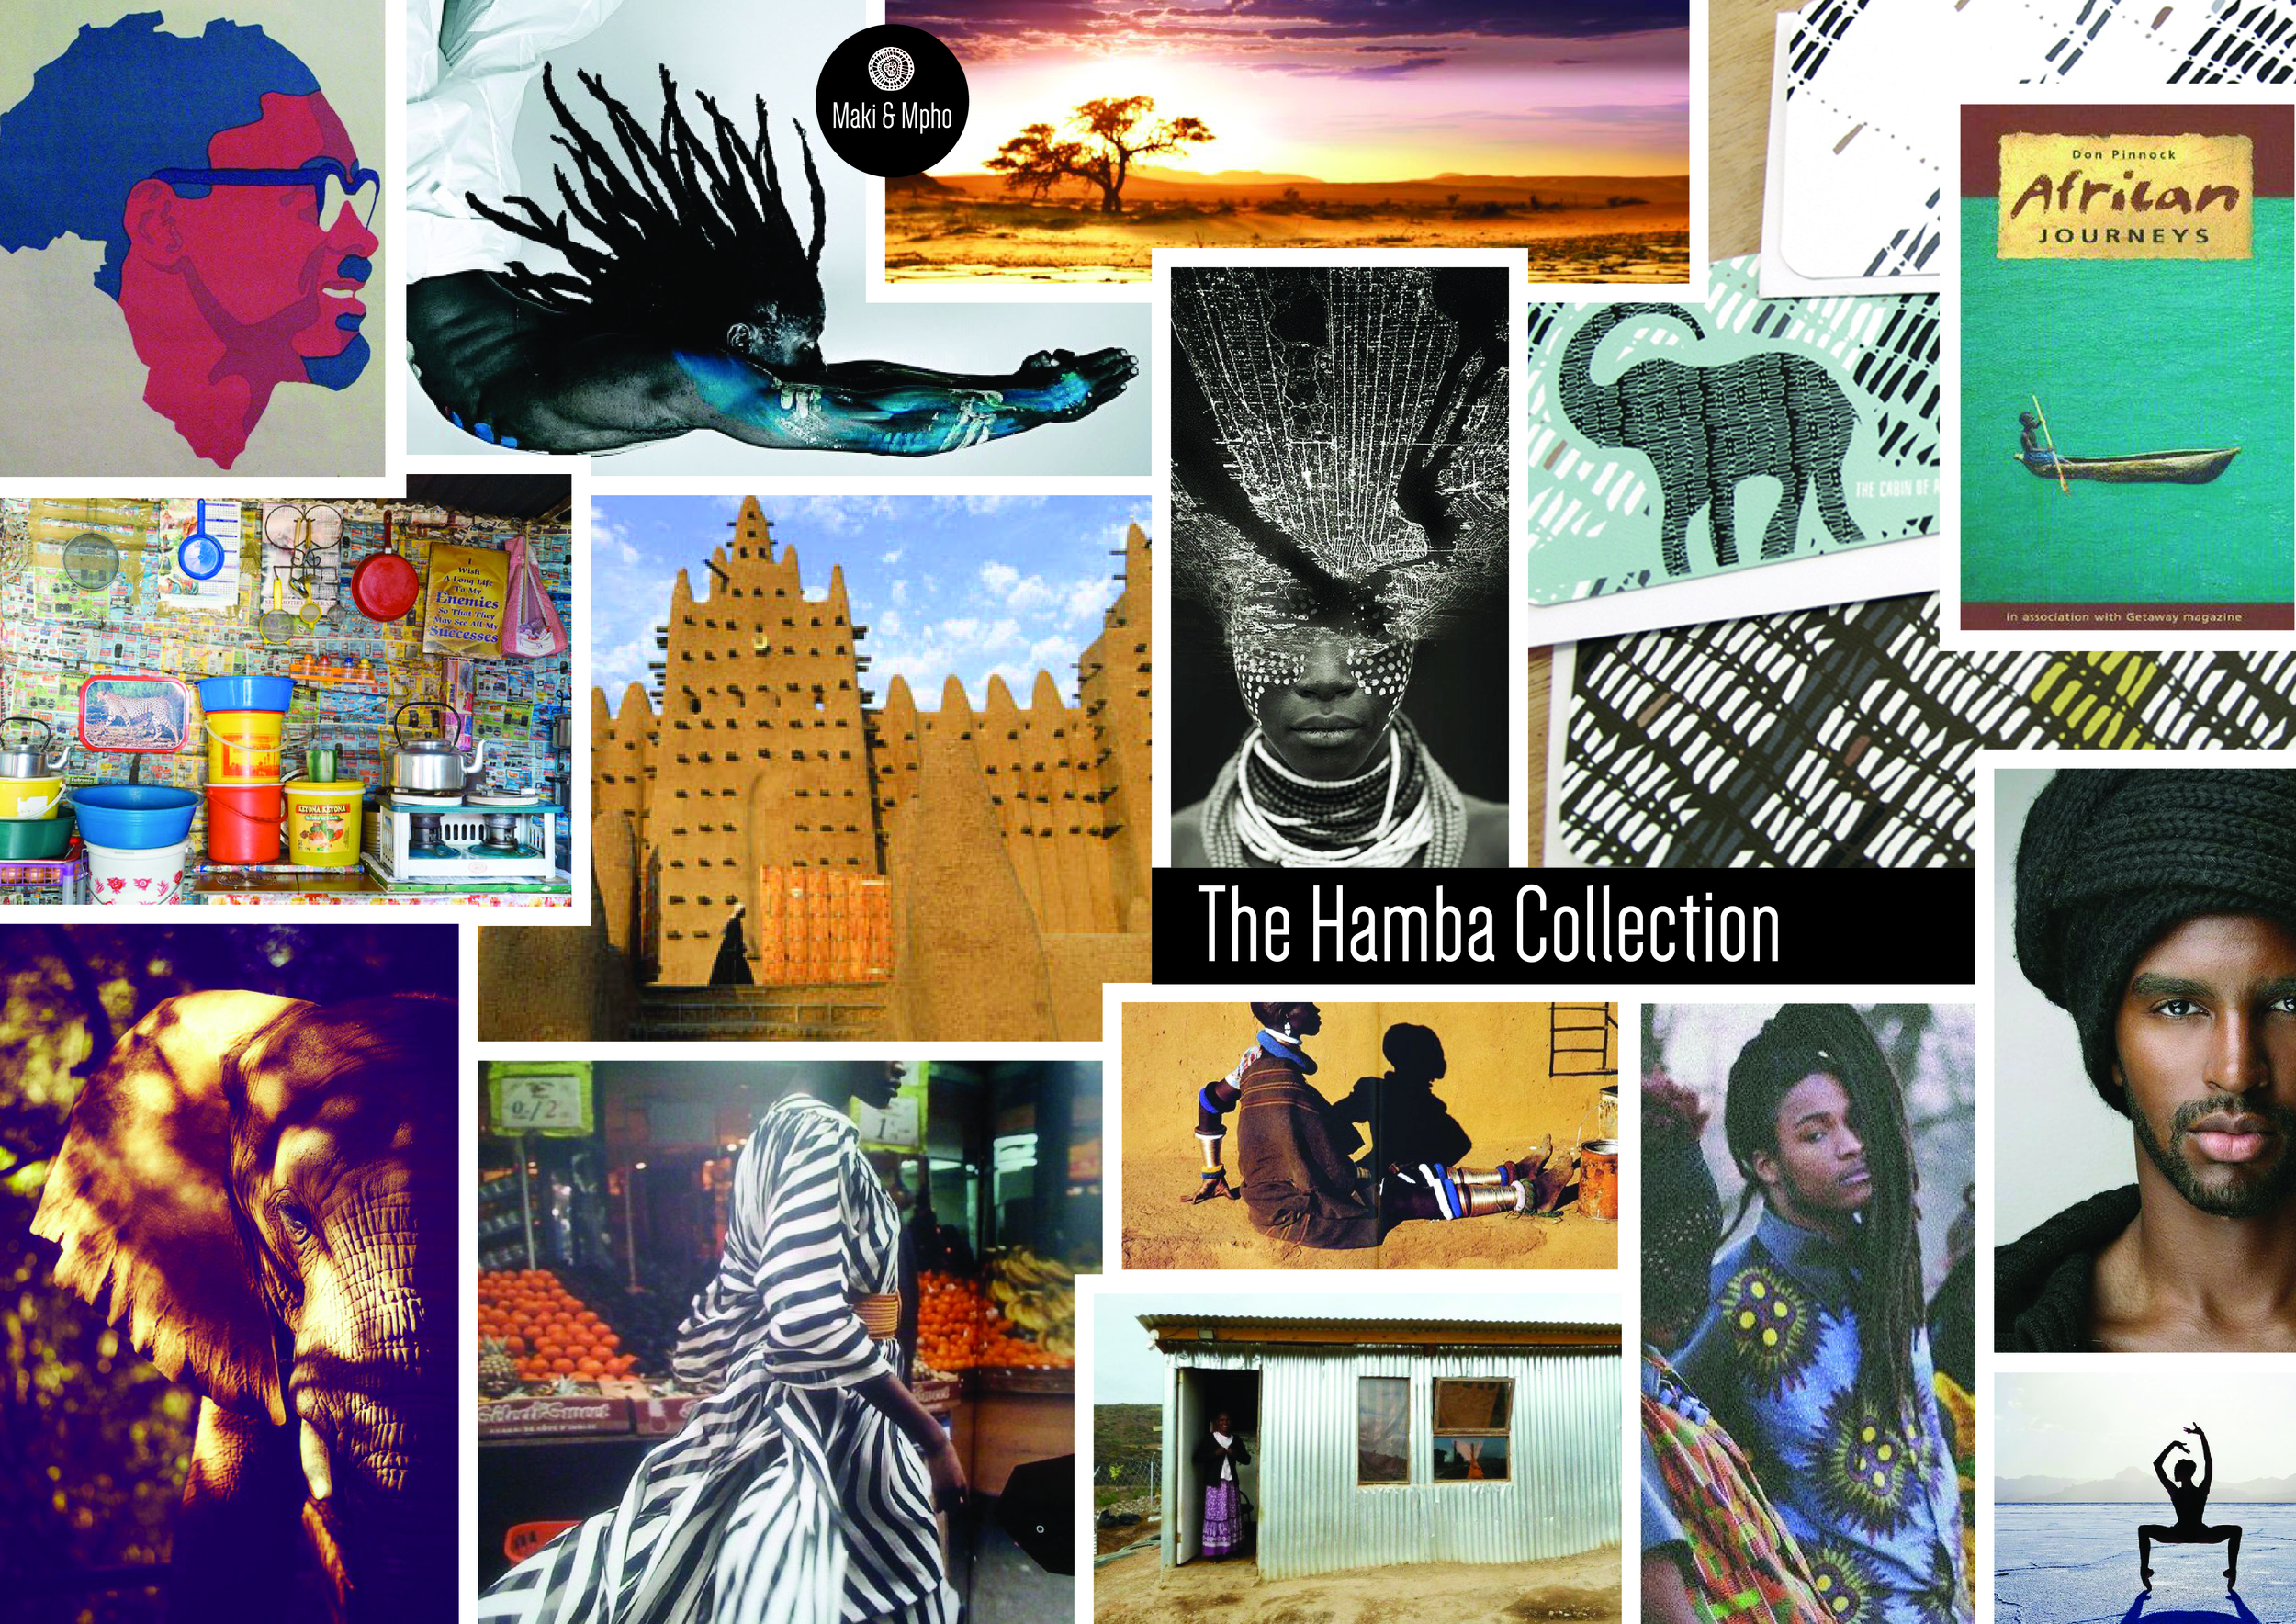 Source: Curation of Maki & Mpho's original images and other image sources (via Google Image)